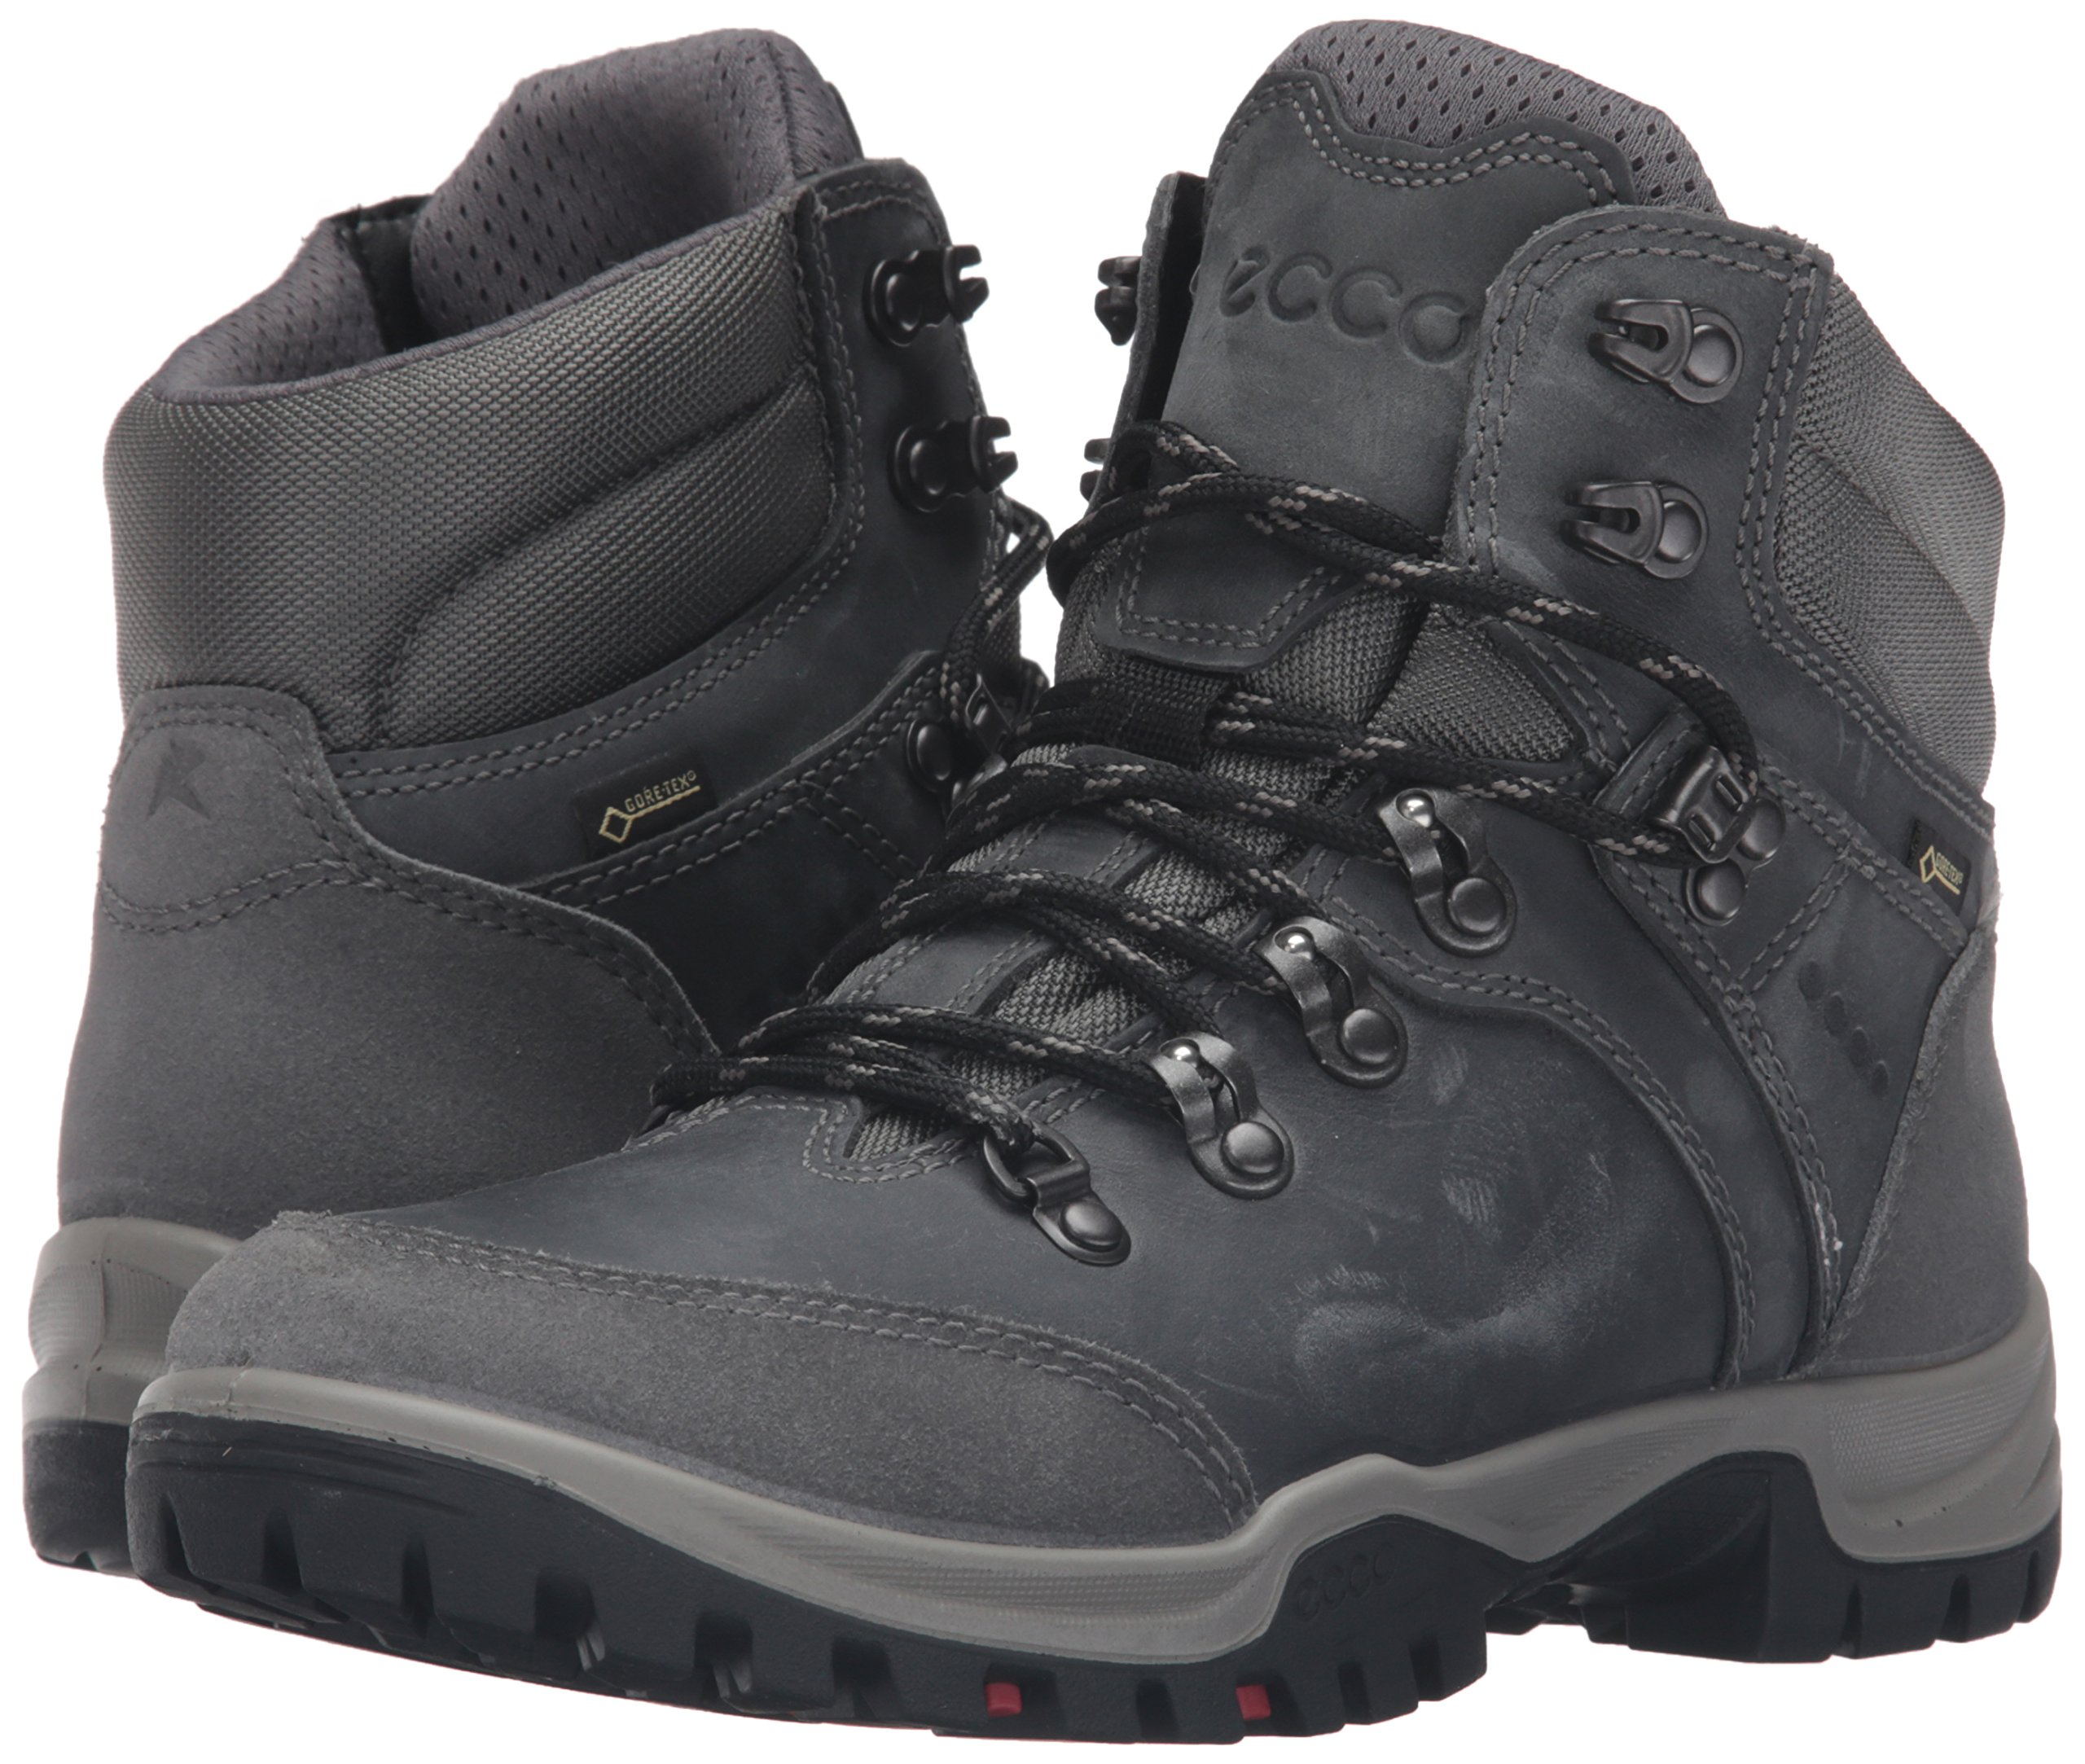 91pGAP8tH5L - ECCO Women's Xpedition Iii Ladies Low Rise Hiking Shoes